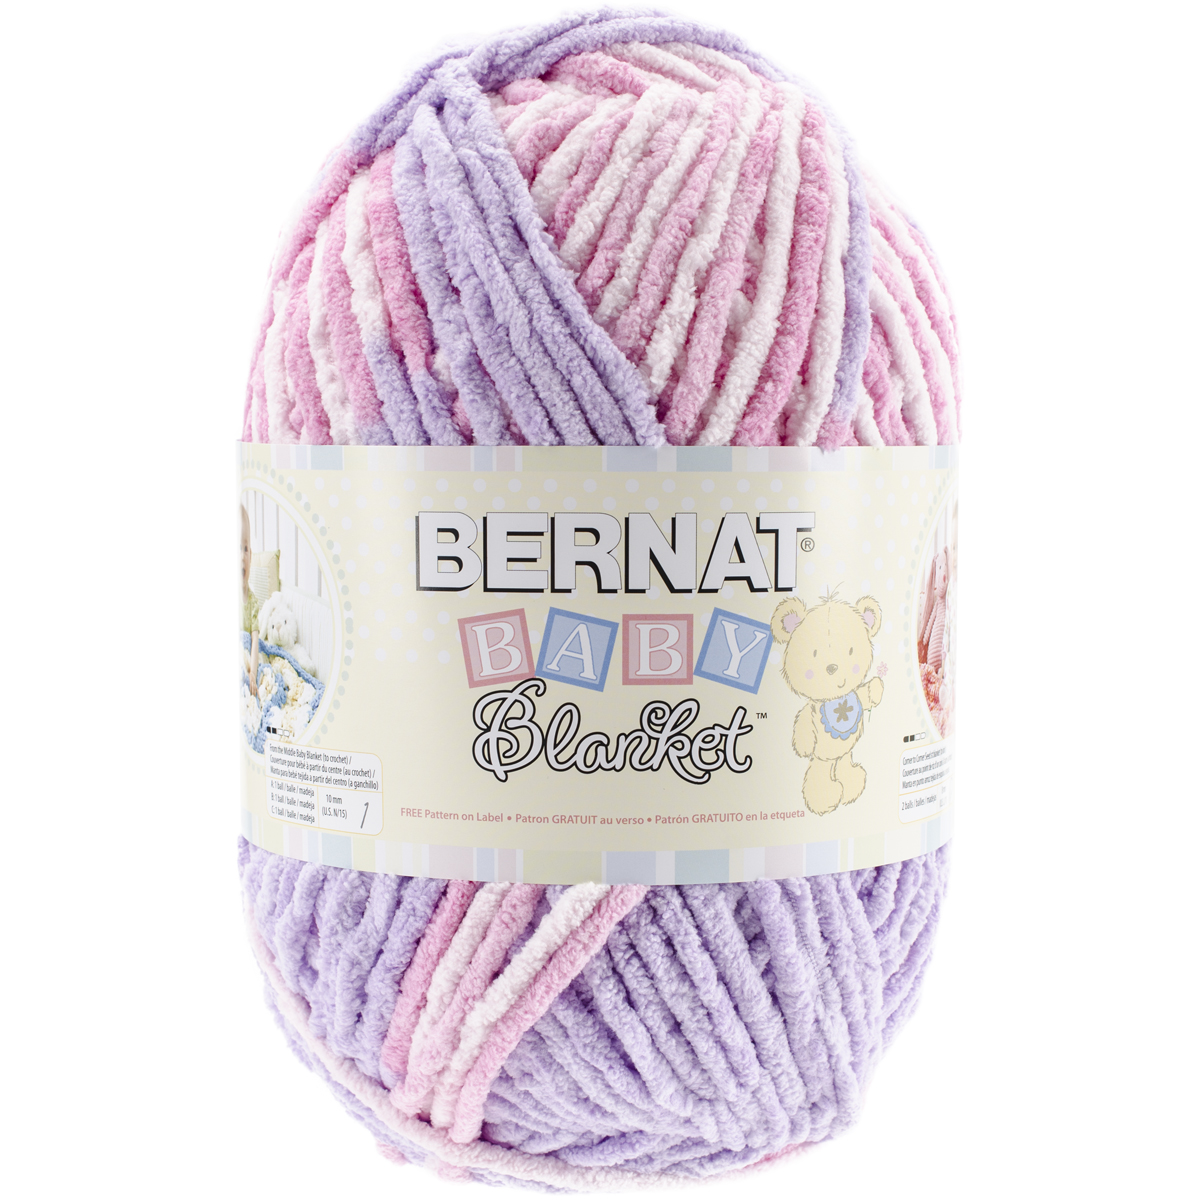 Crochet Patterns Bernat Blanket Yarn : ... Bernat? Baby Blanket? Big Ball Yarn 10.5oz ? Bernat? Baby Blanket